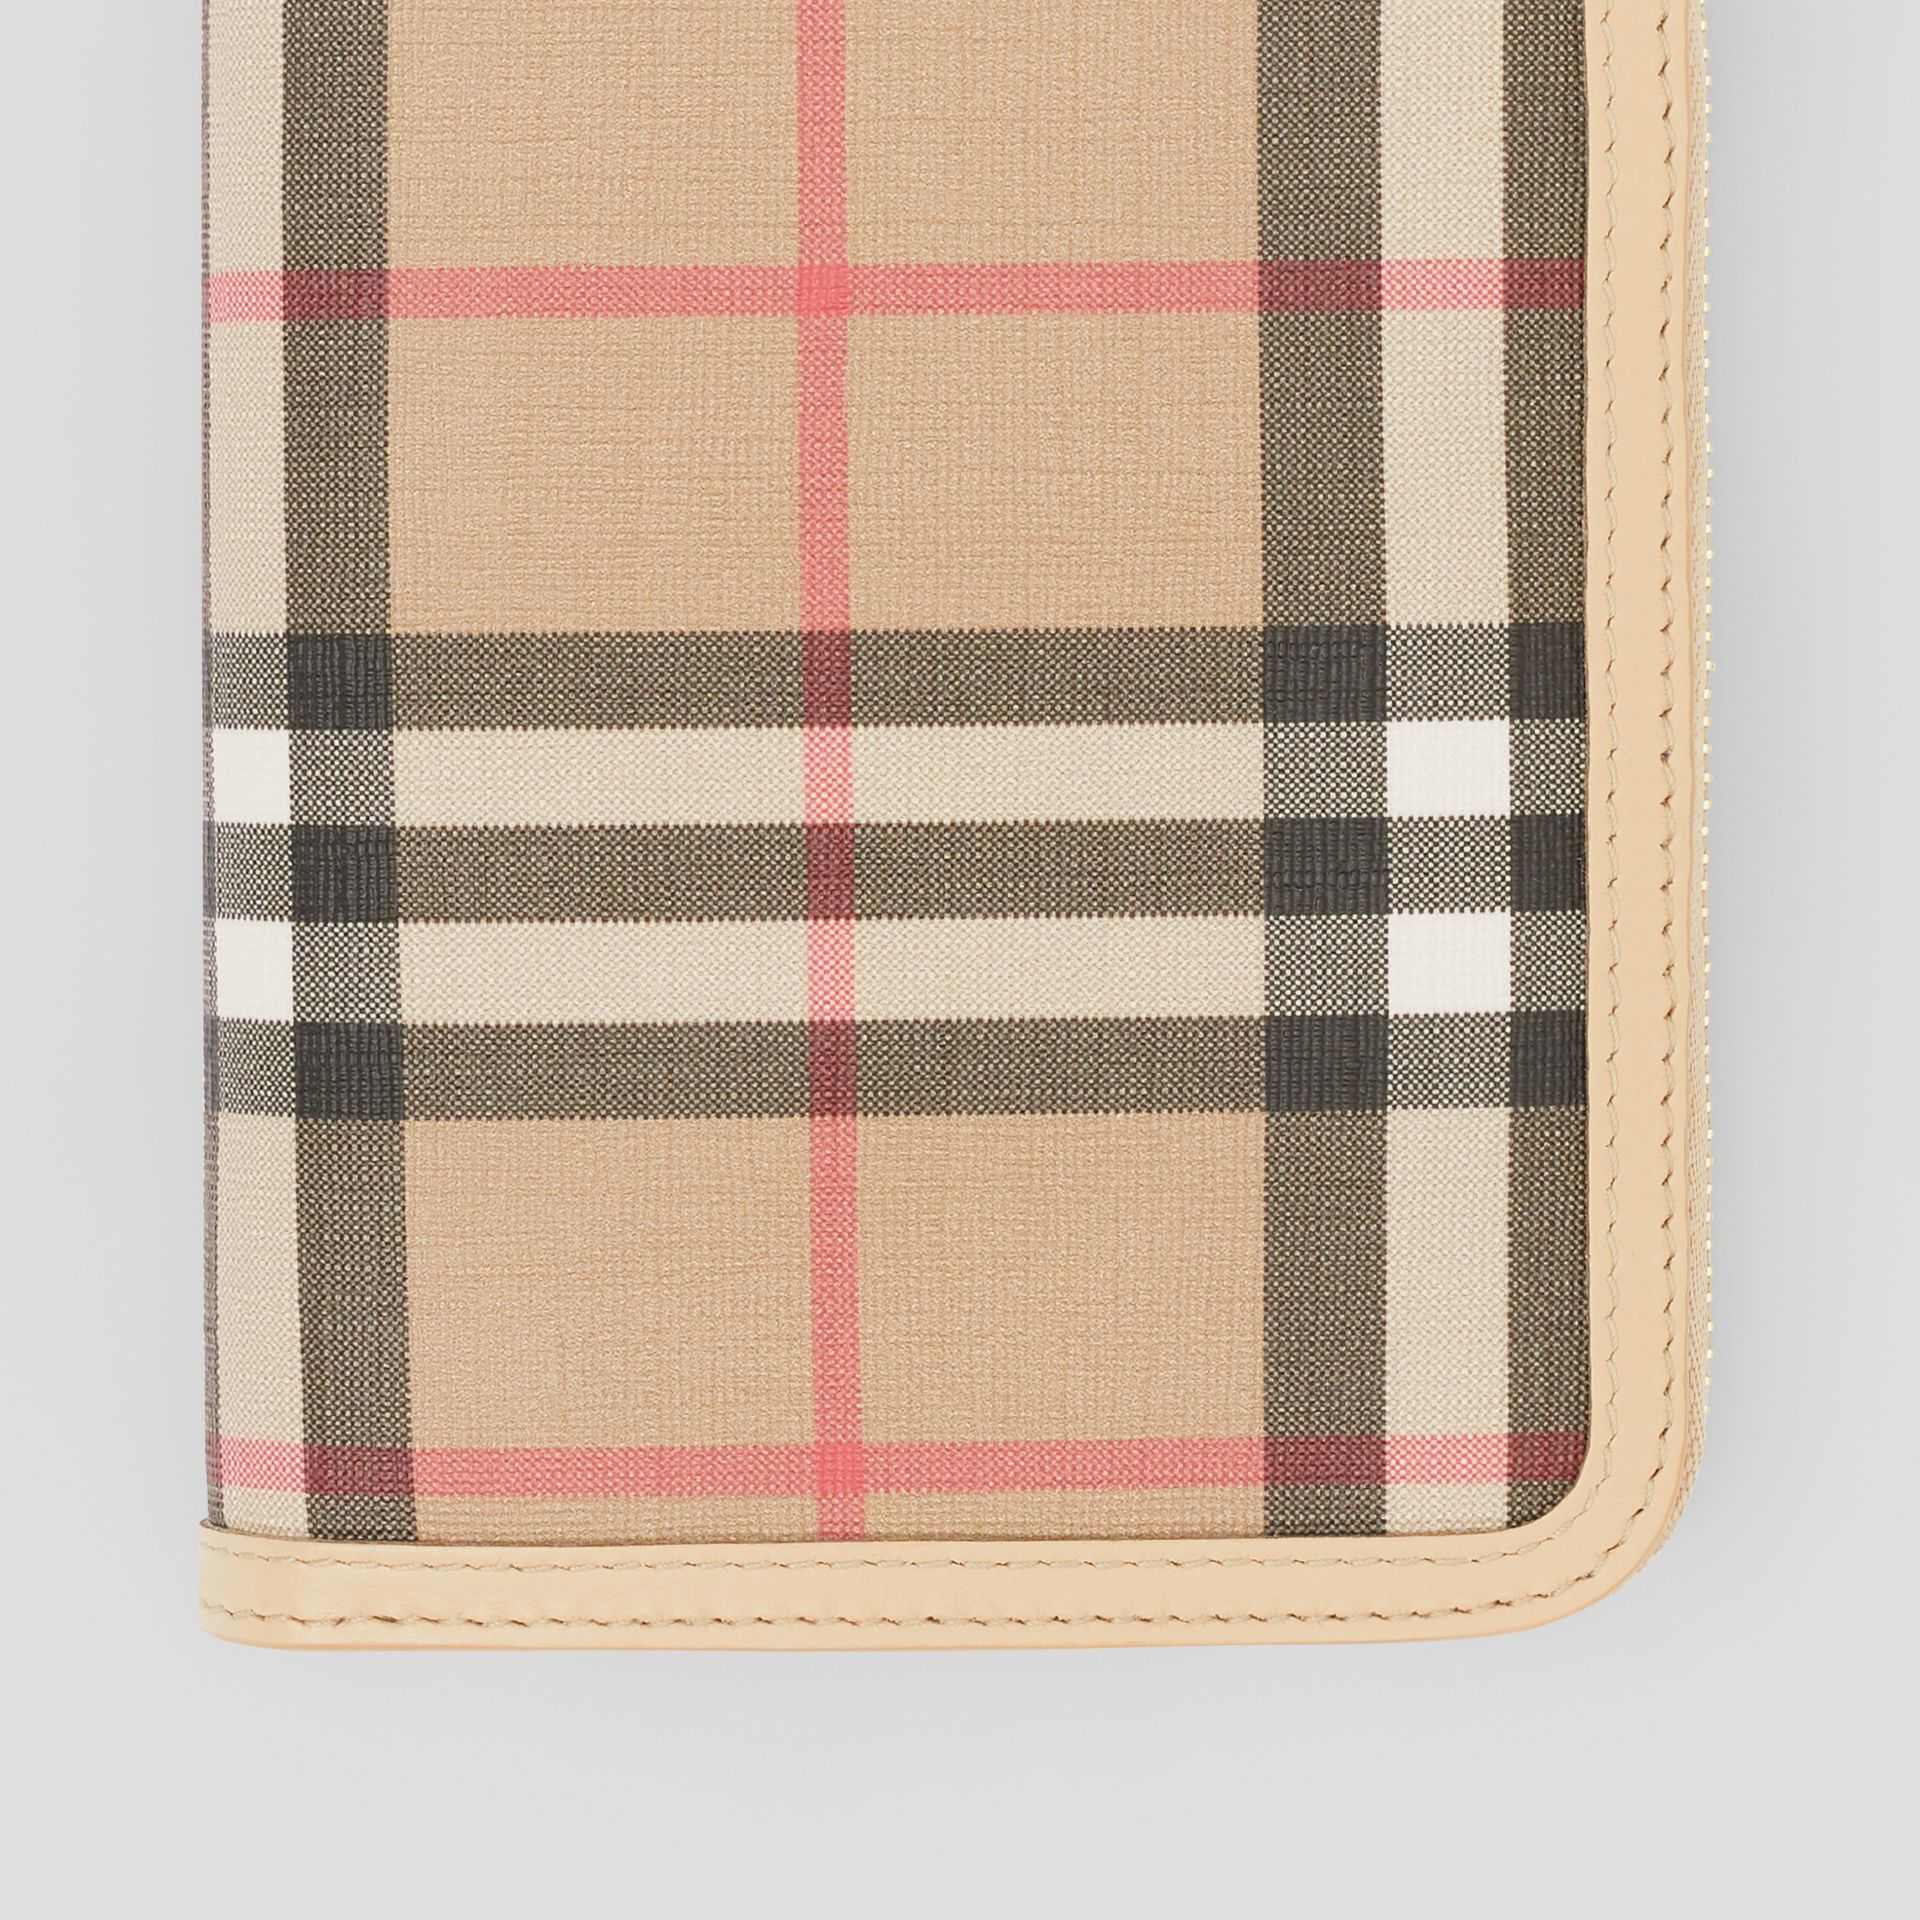 Vintage Check E-canvas and Leather Wallet in Beige - Women | Burberry - gallery image 1